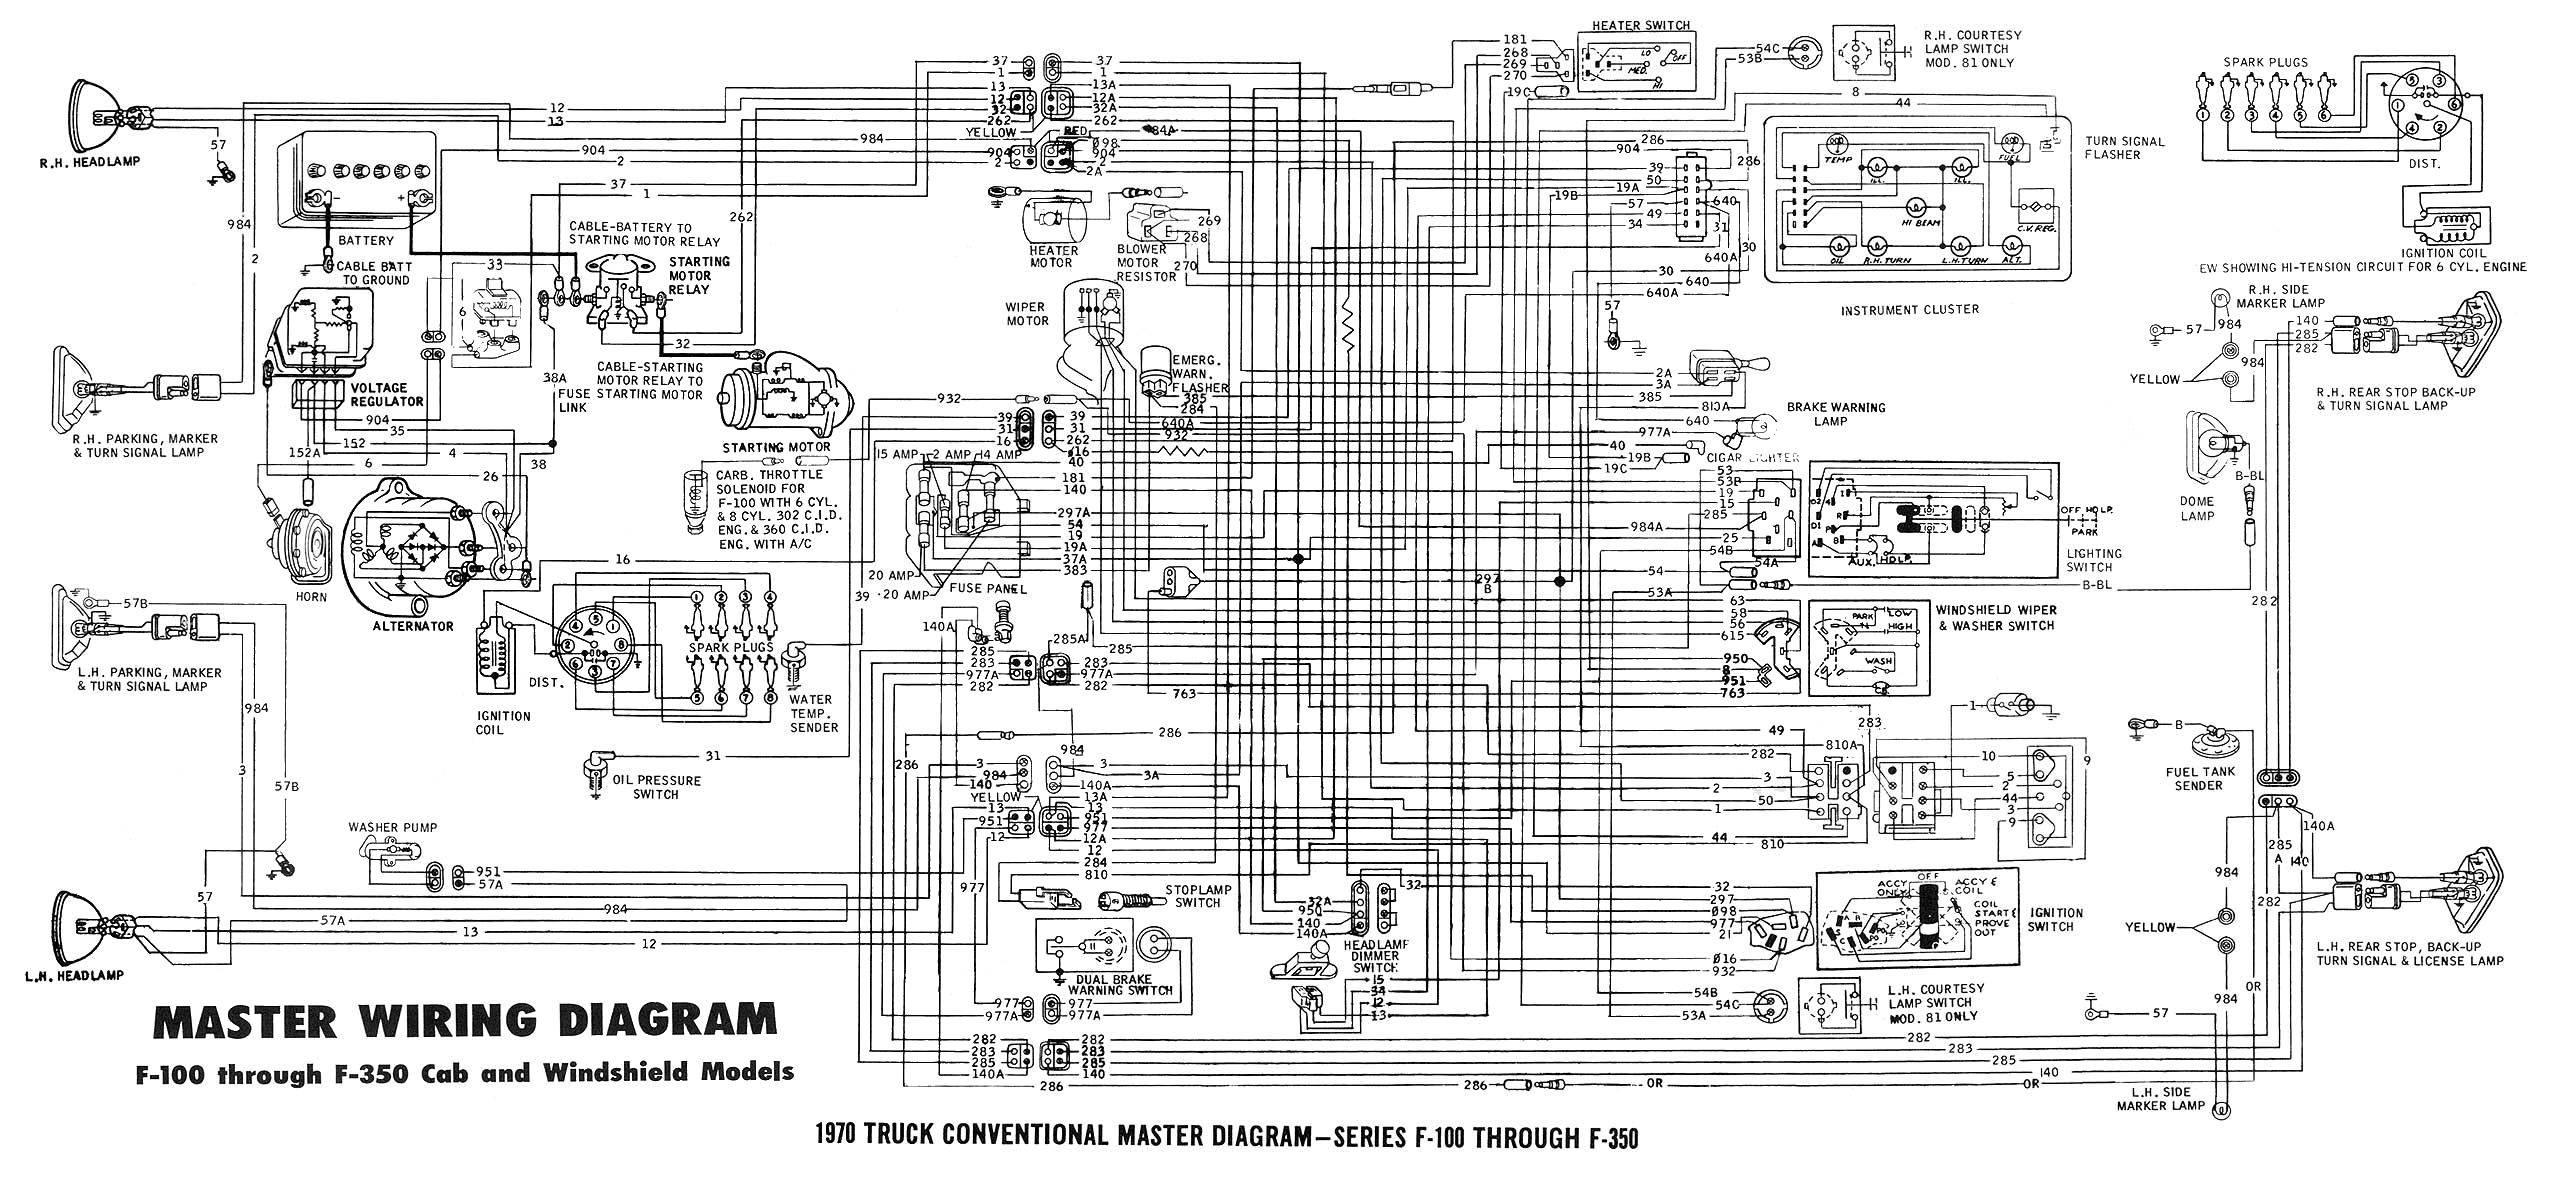 fleetwood motorhome wiring diagram 1975 dodge motorhome wiring diagram 1975 automotive wiring diagrams 1978 ford pickup wiring diagram opaktle fleetwood